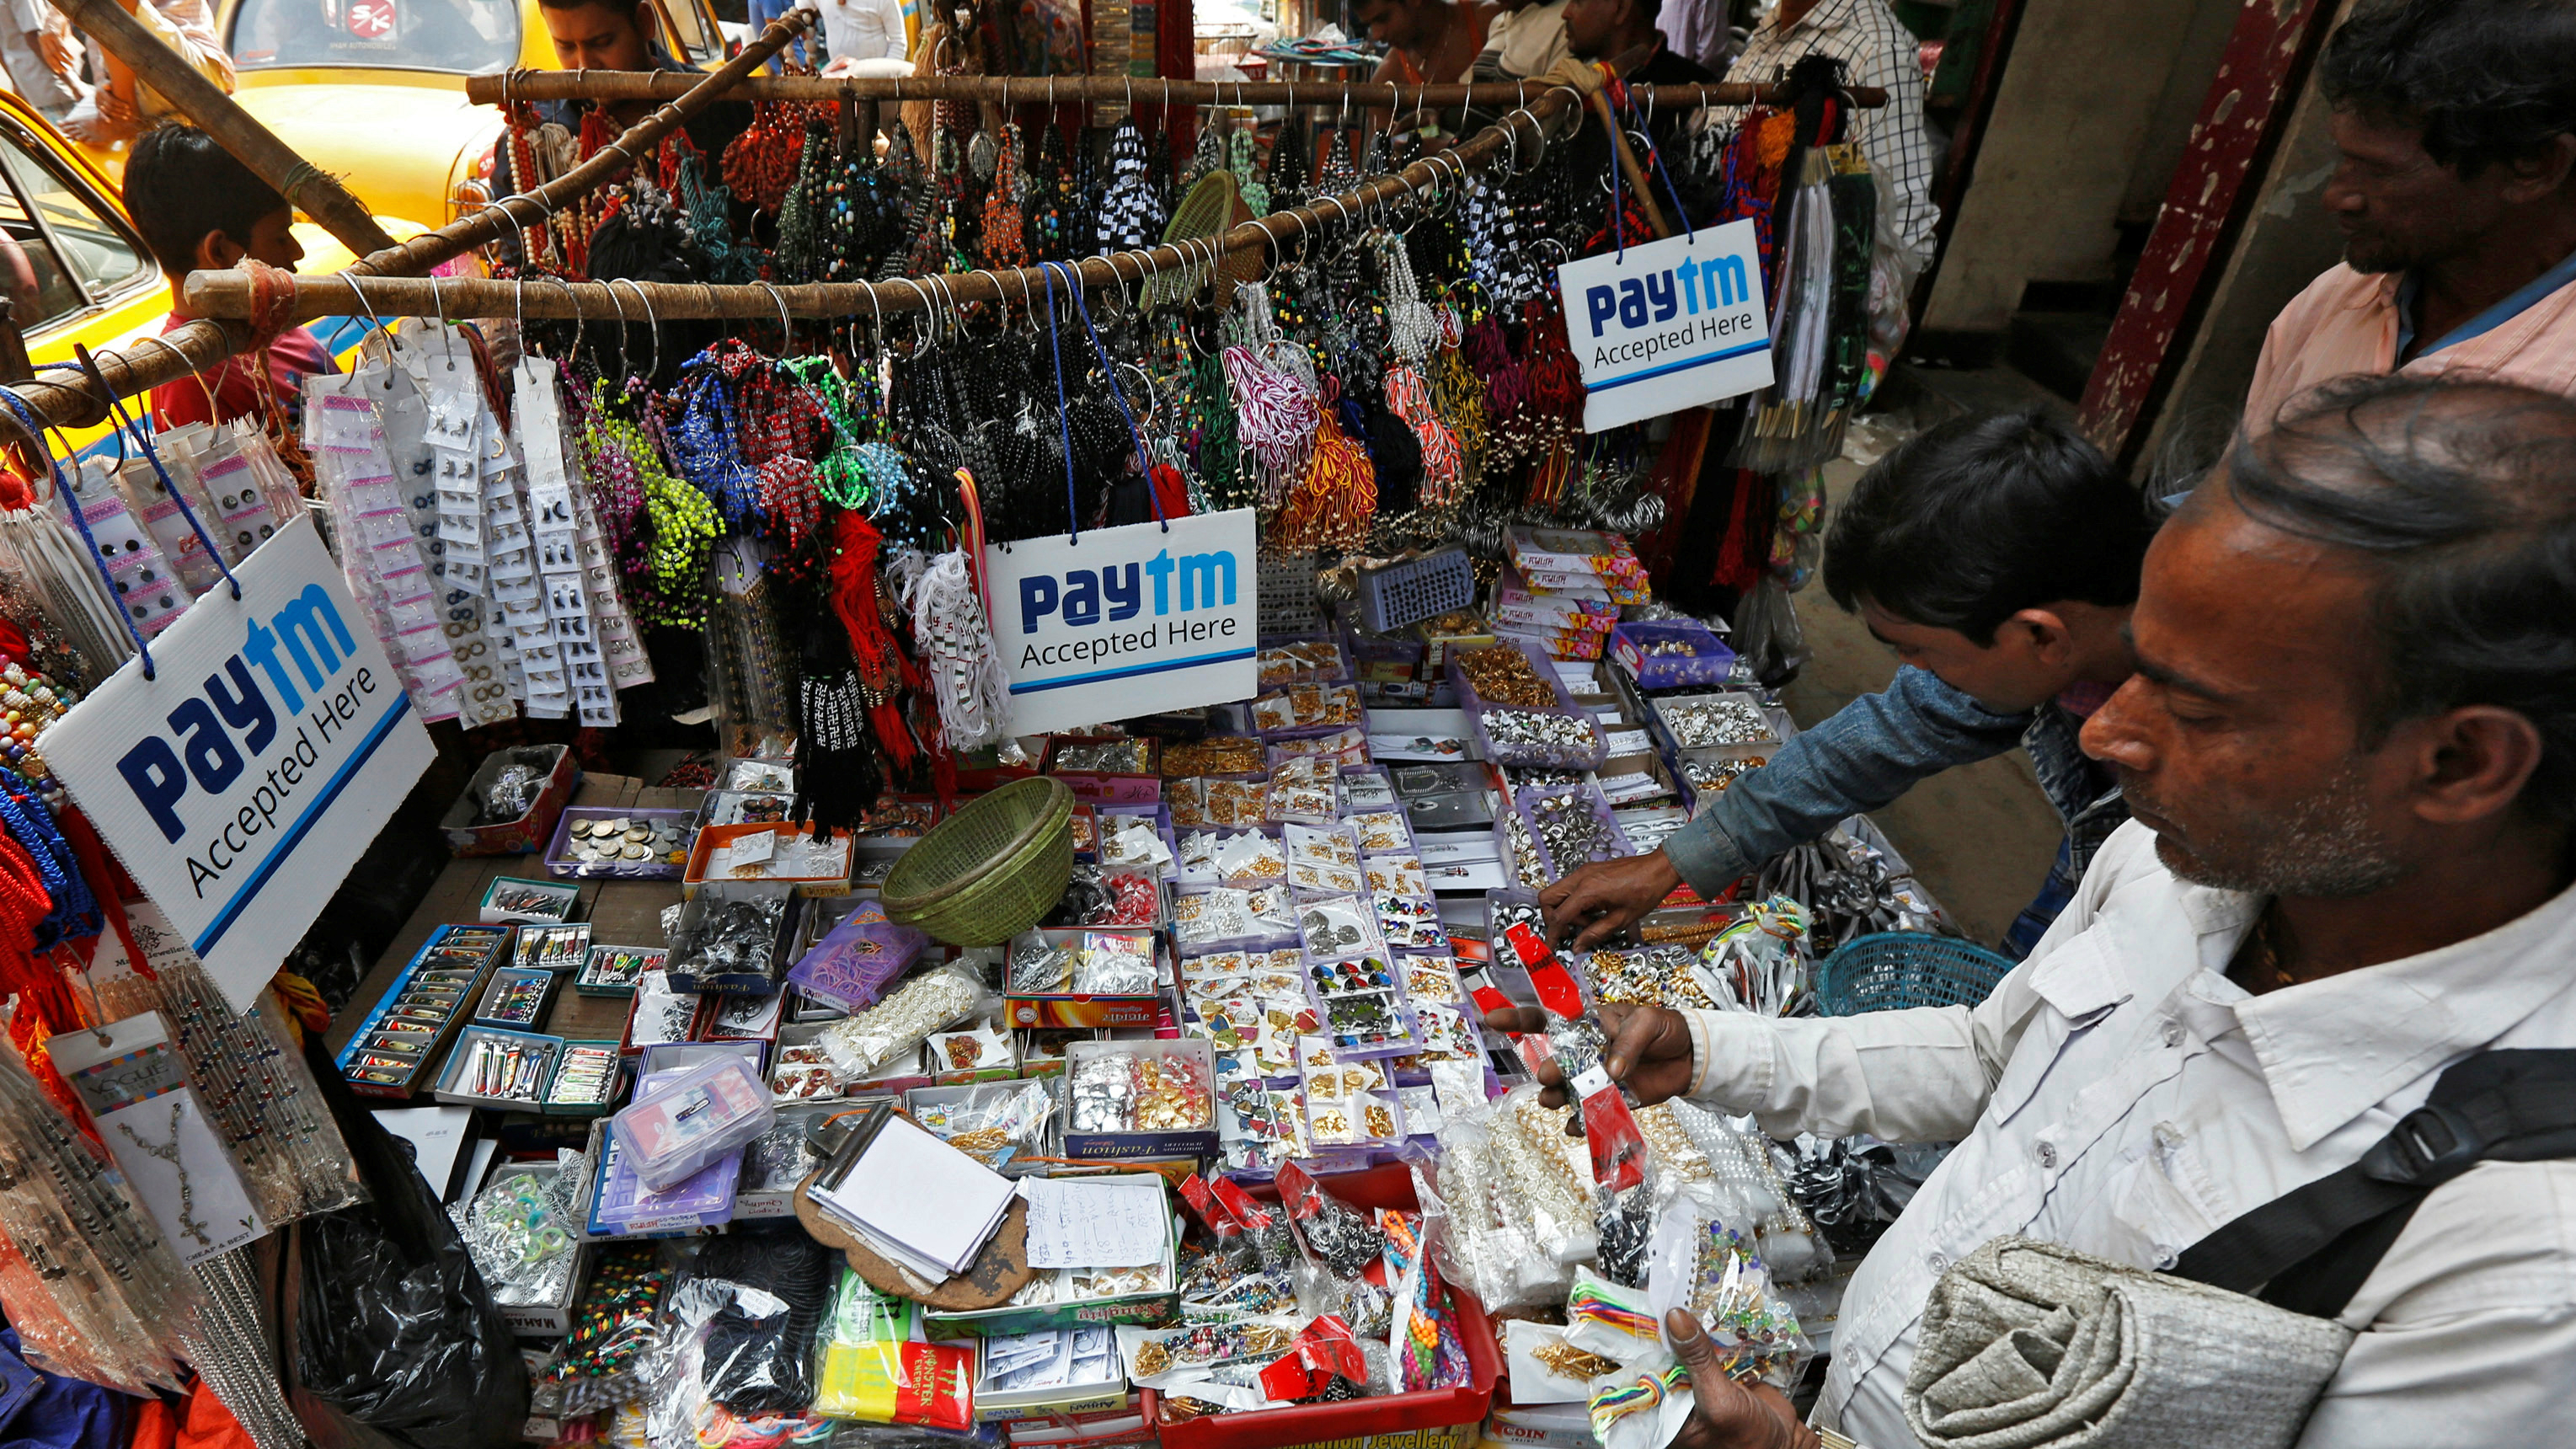 Advertisements of Paytm, a digital wallet company, are seen placed at a road side stall in Kolkata, India, January 25, 2017. Picture taken January 25, 2017. REUTERS/Rupak De Chowdhuri